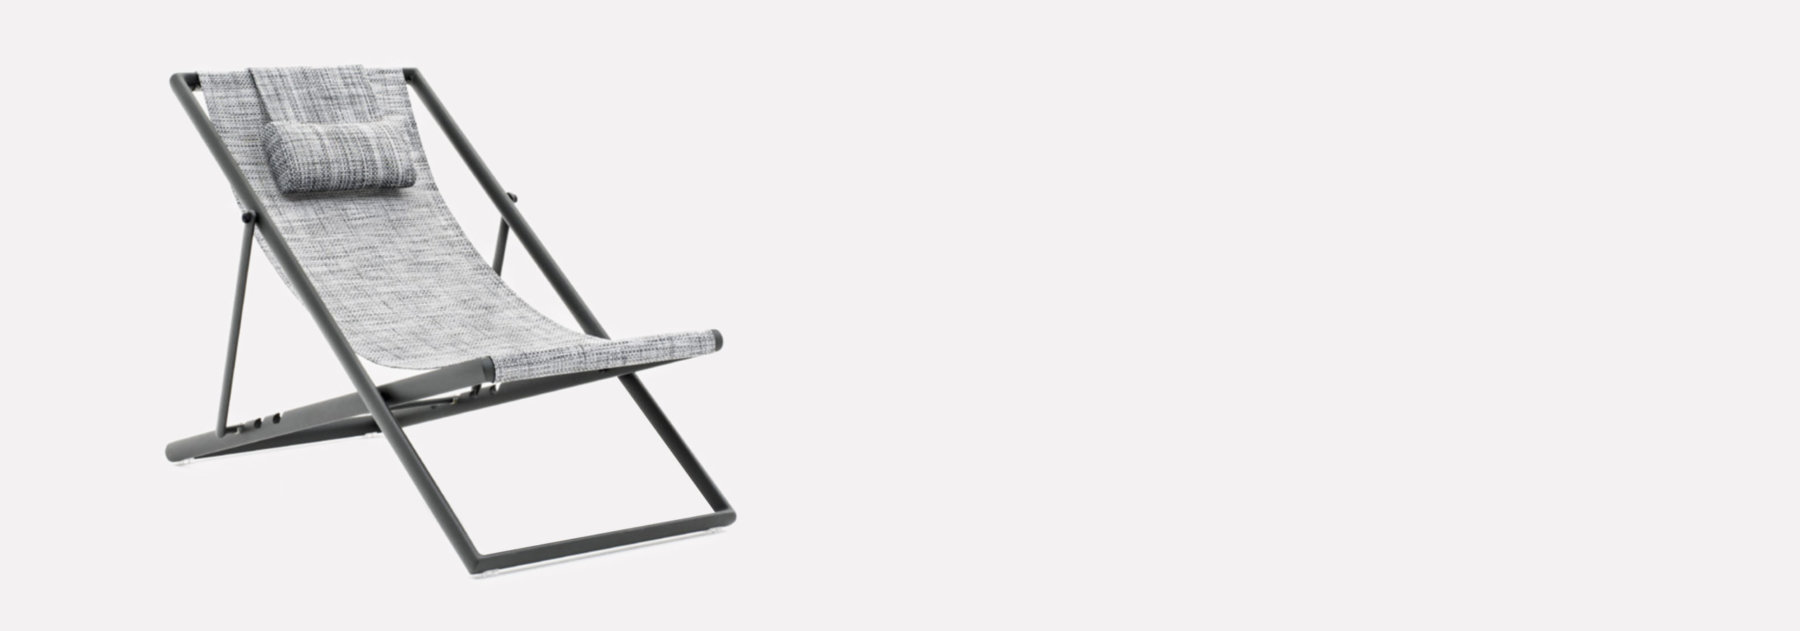 CLEVER_CHAISE_LONGUE_SLIDE_01